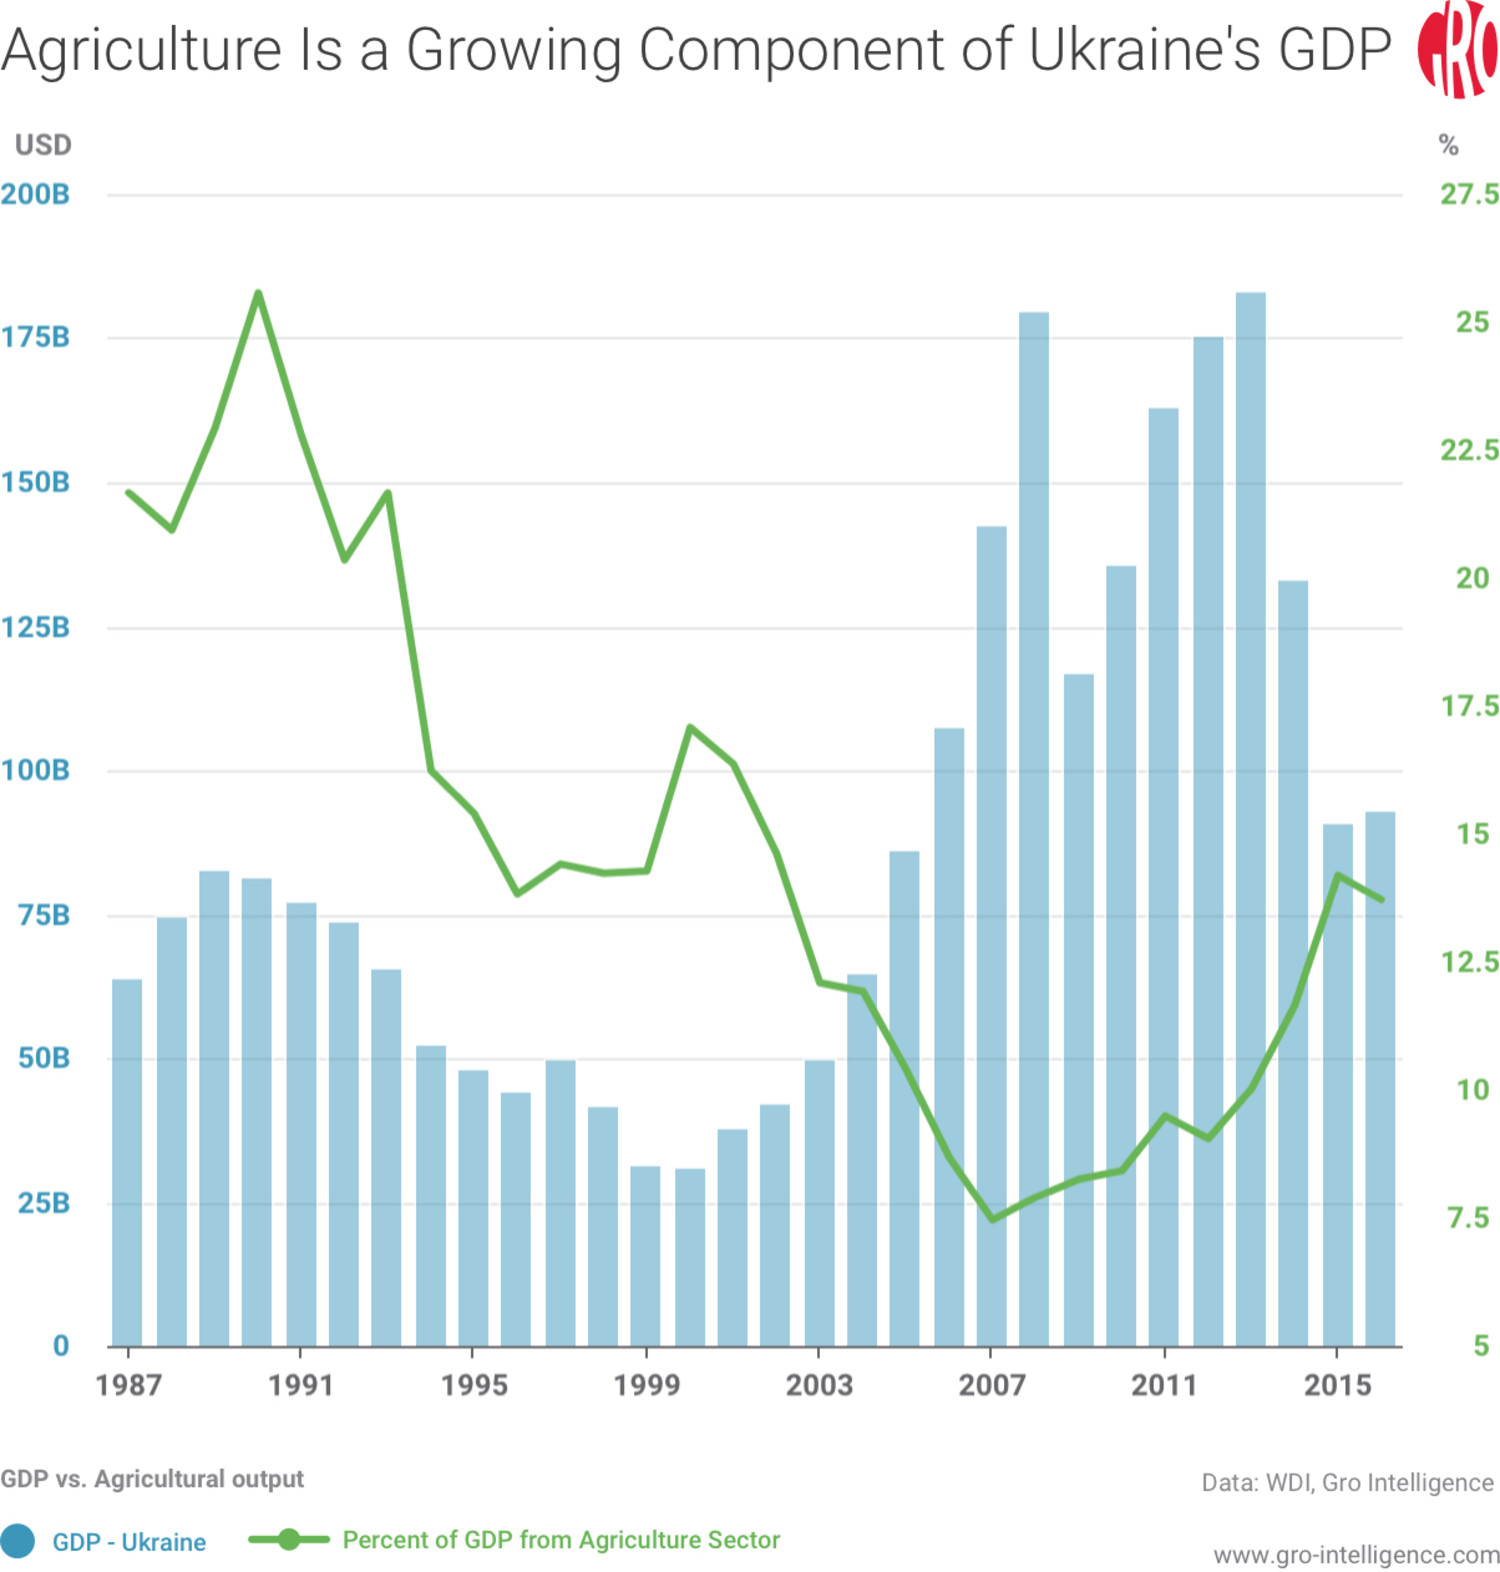 Agriculture Is a Growing Component in Ukraine's GDP